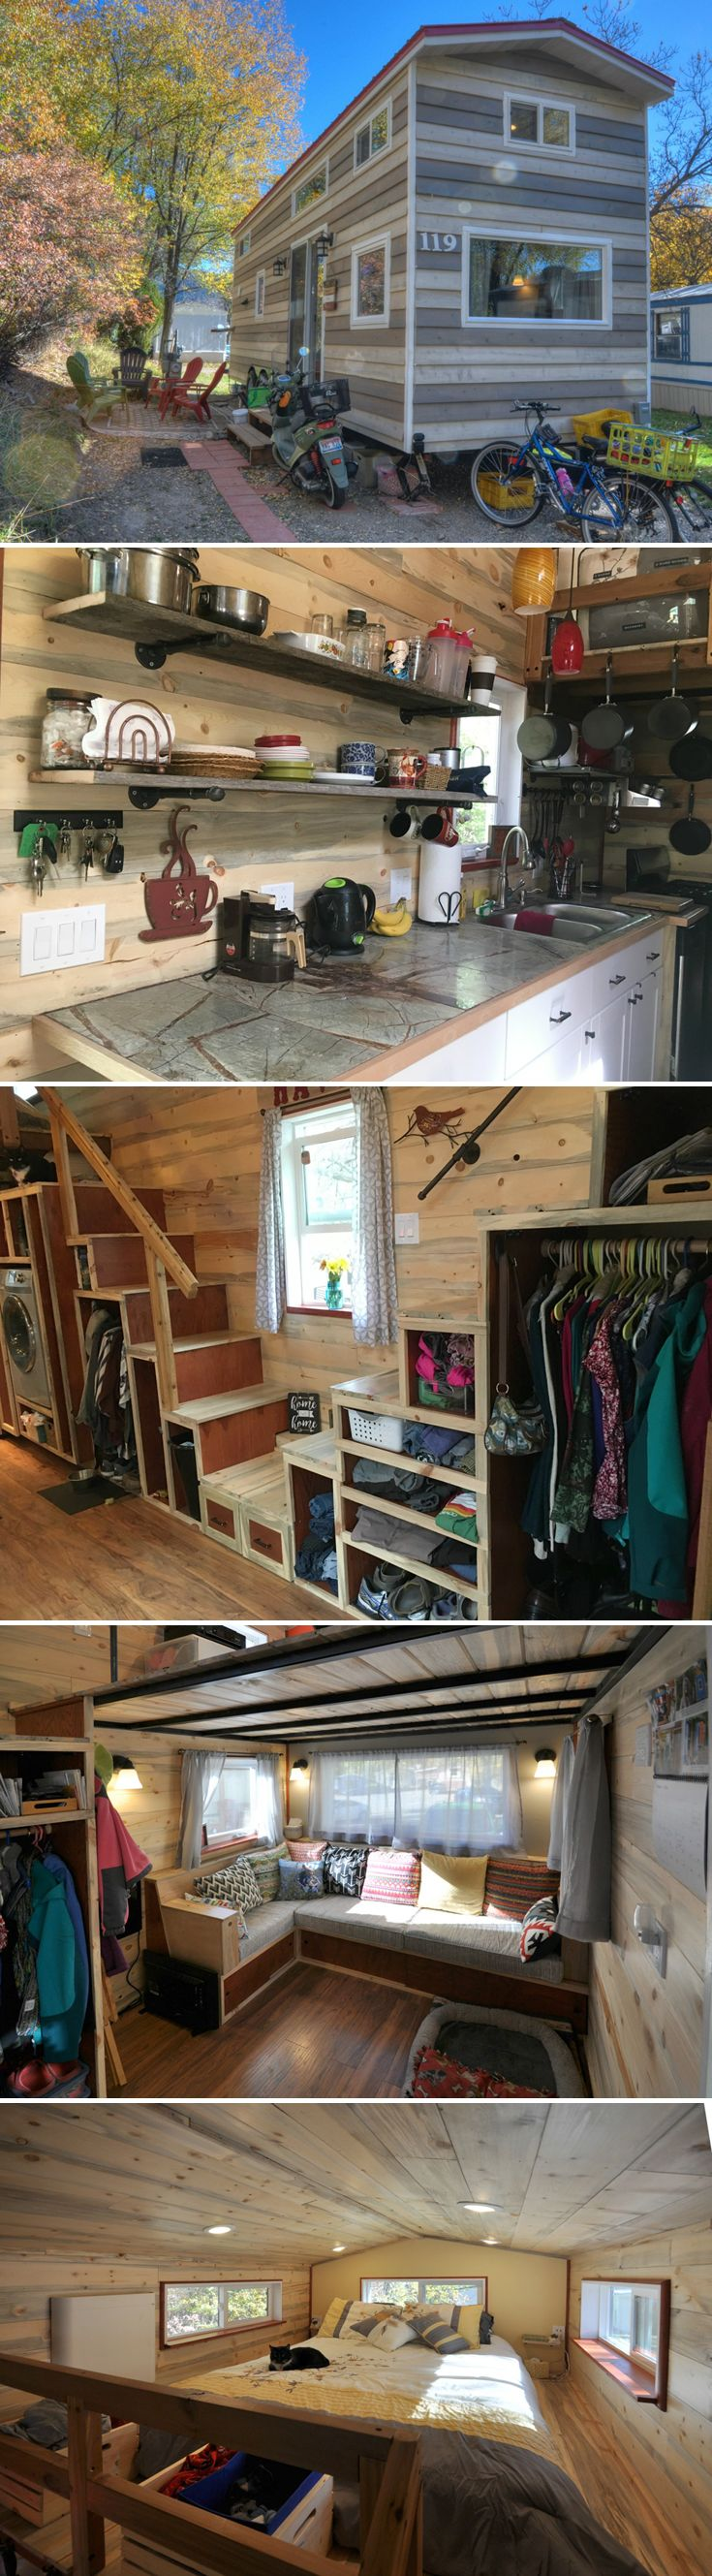 To help create a simpler life for themselves, Kathi & Jim MacNaughton designed this 28' tiny house with plenty of space for both of them to work from home.